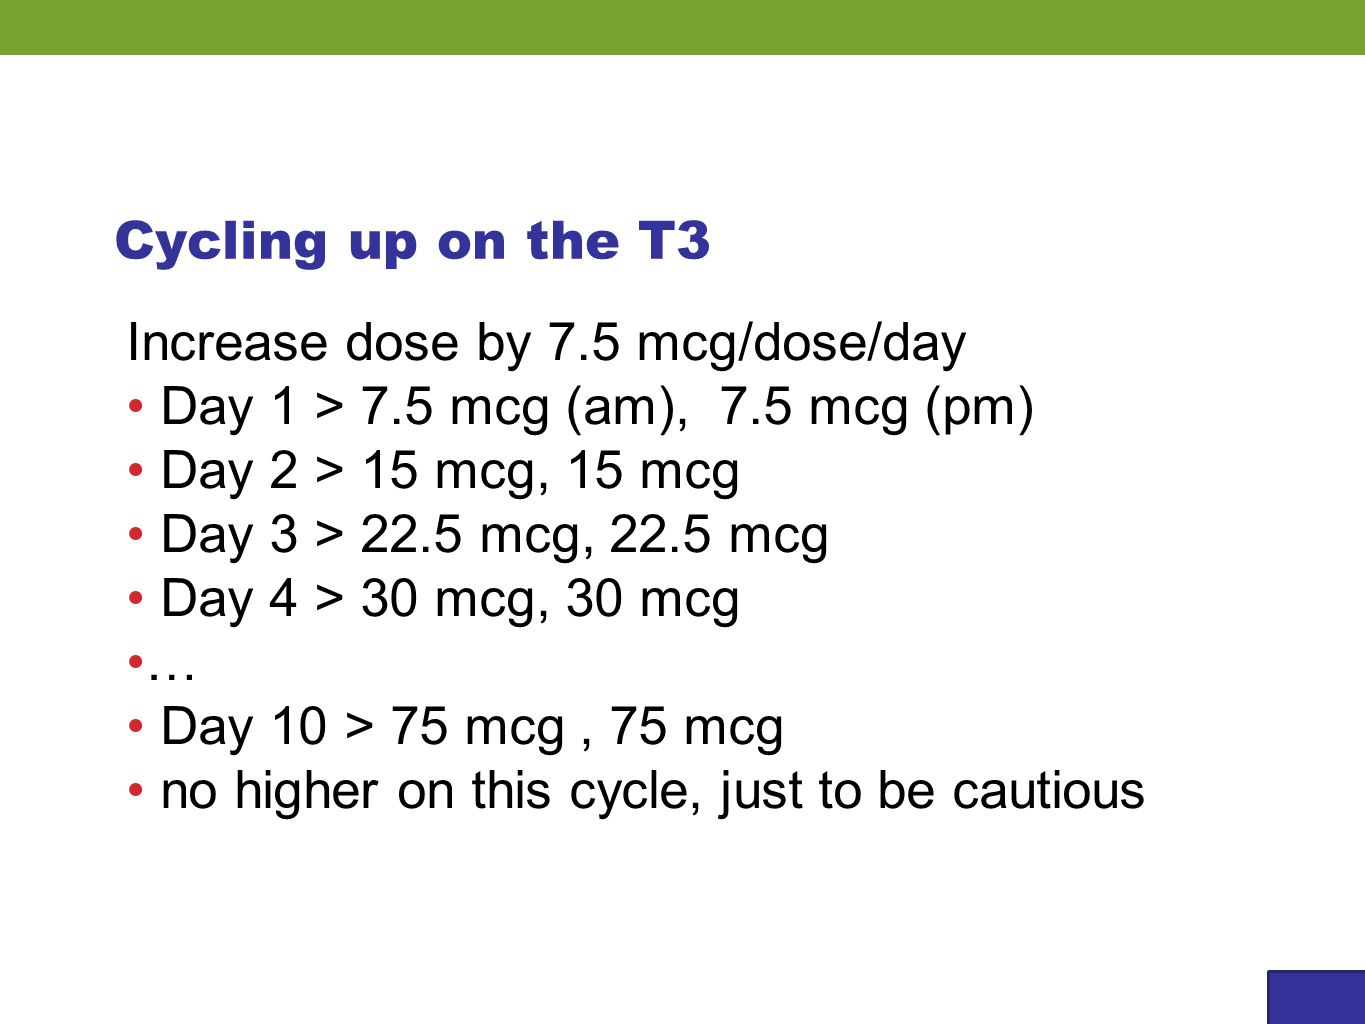 Cycling up on the T3 Increase dose by 7.5 mcg/dose/day Day 1 > 7.5 mcg (am), 7.5 mcg (pm) Day 2 > 15 mcg, 15 mcg Day 3 > 22.5 mcg, 22.5 mcg Day 4 > 30 mcg, 30 mcg … Day 10 > 75 mcg, 75 mcg no higher on this cycle, just to be cautious